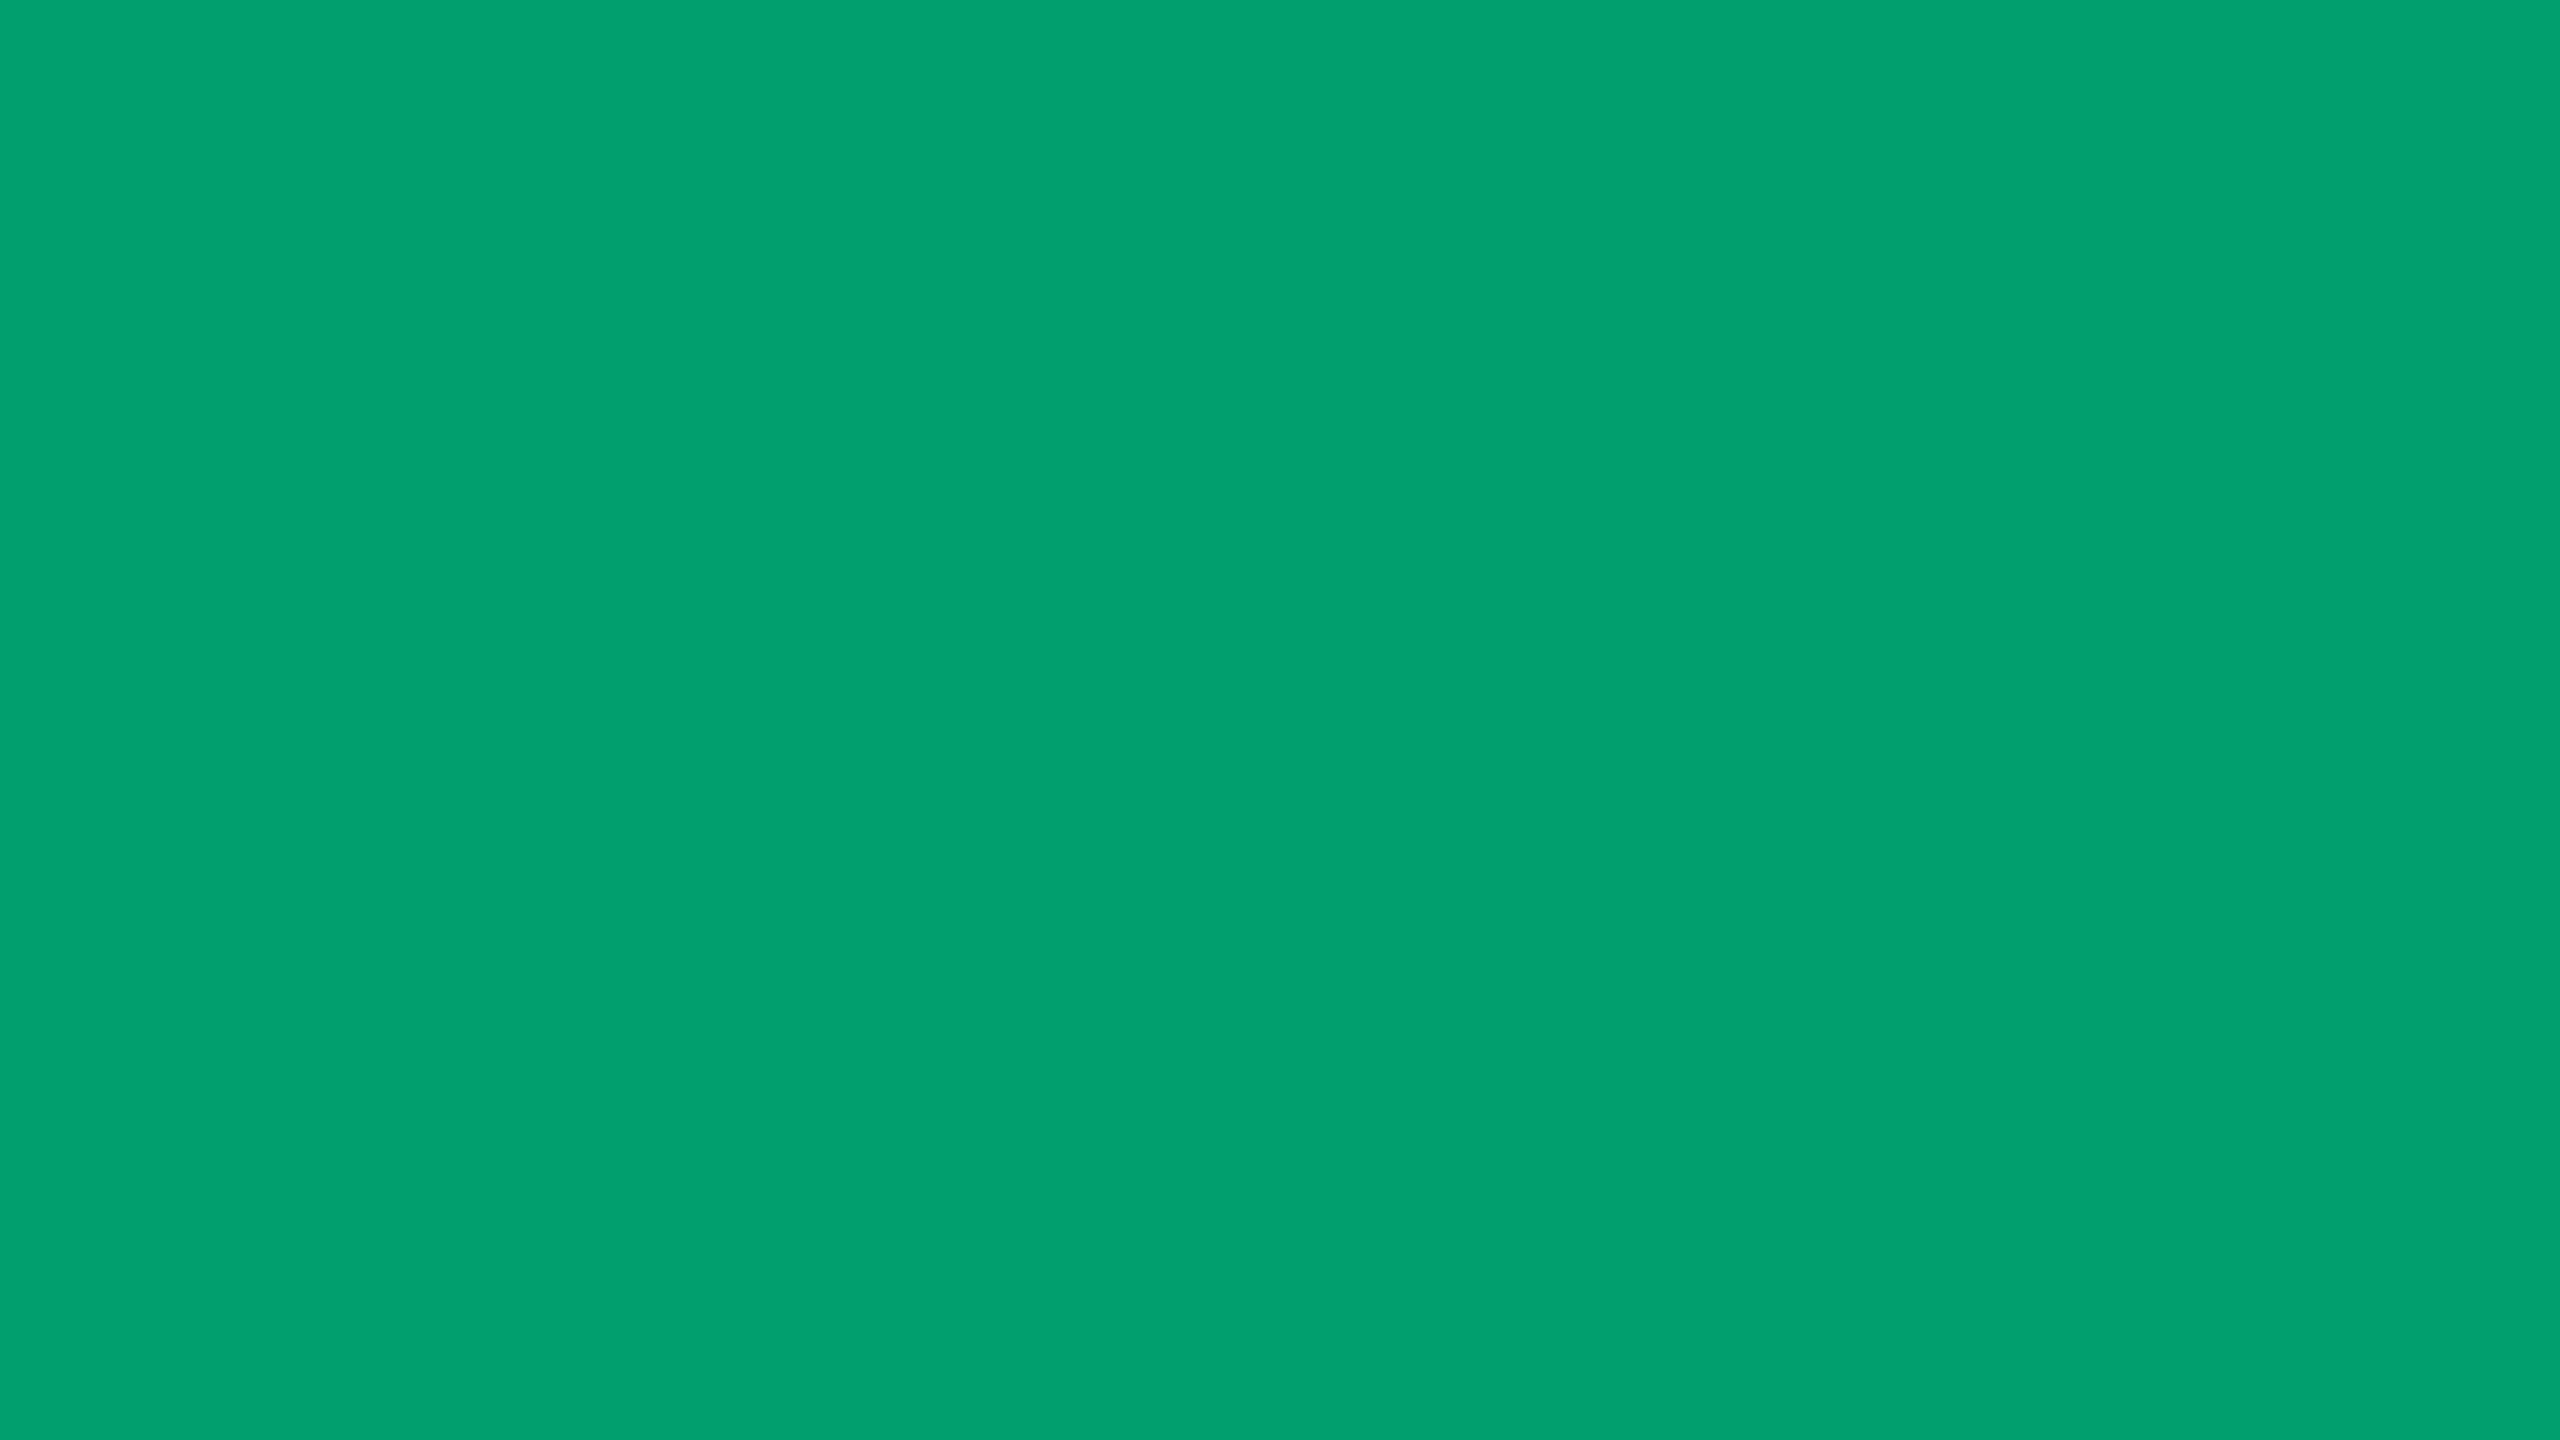 2560x1440 Green NCS Solid Color Background